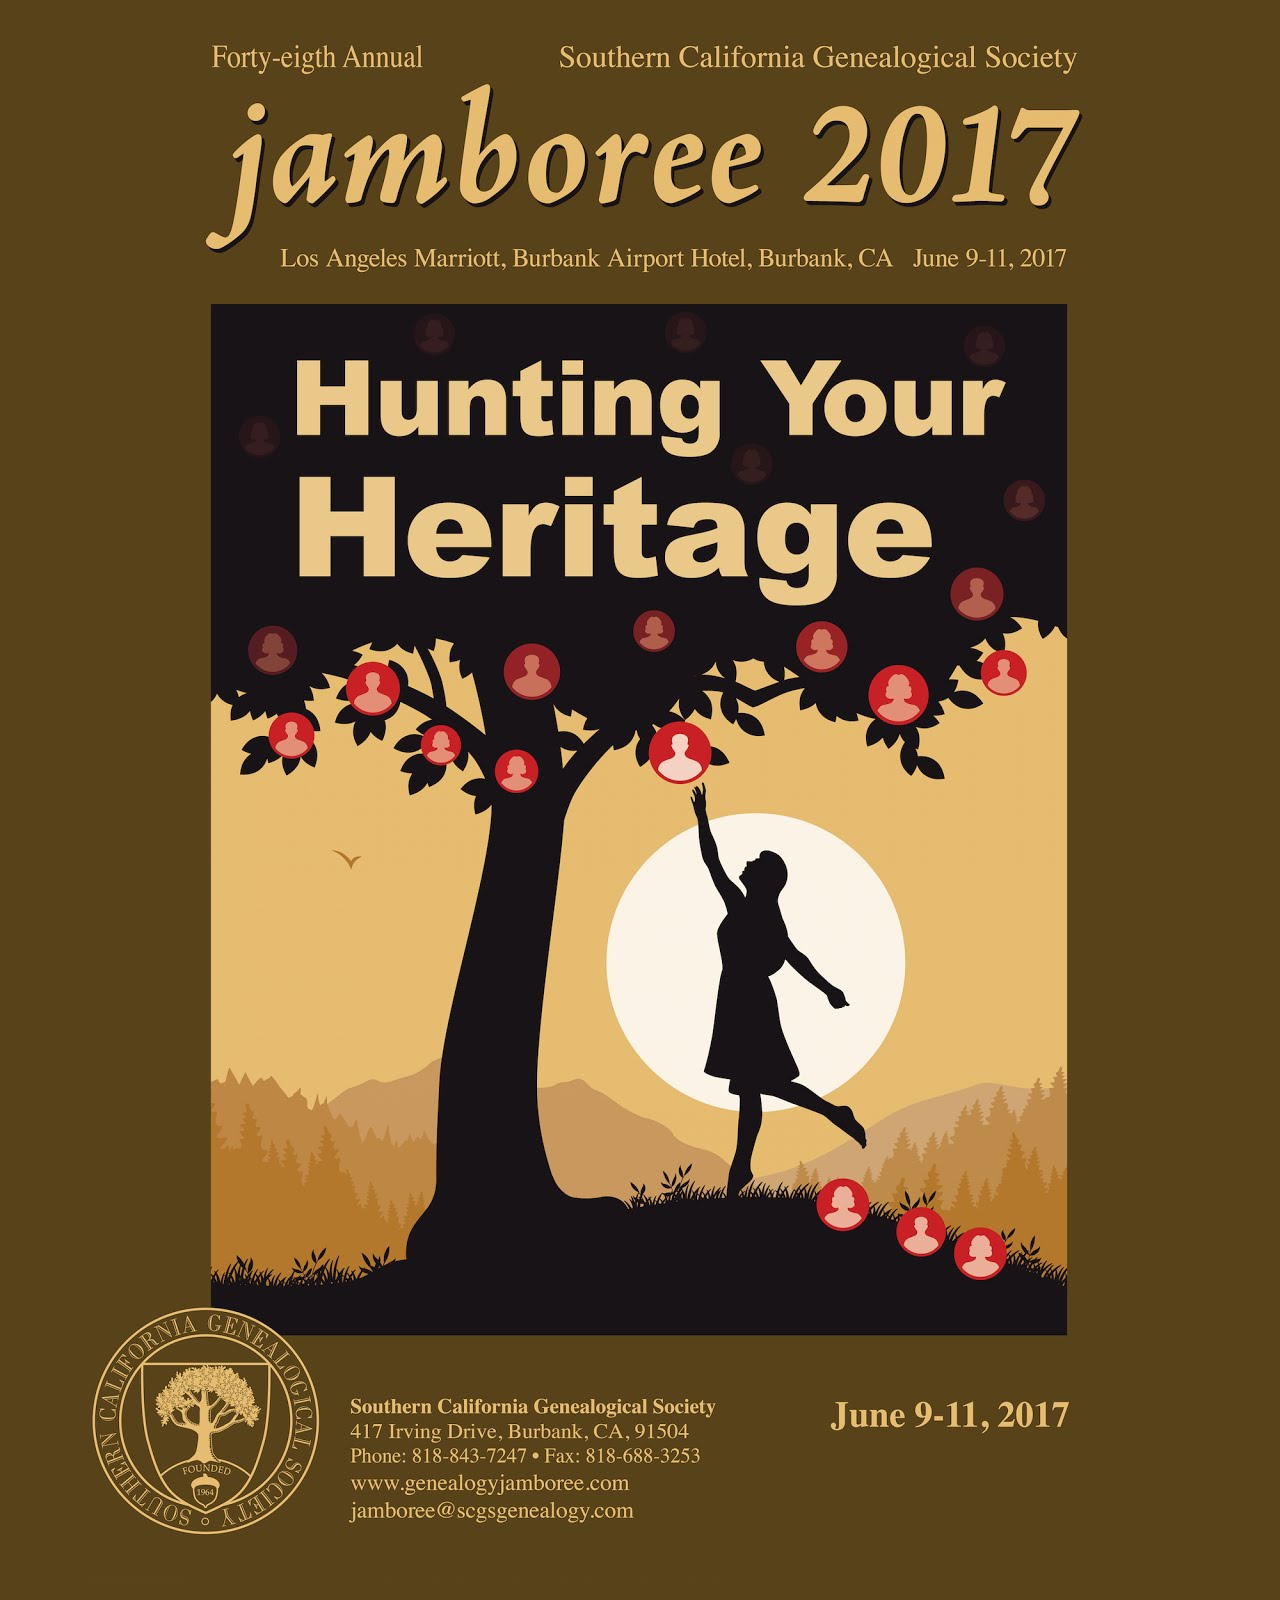 48th Annual Southern California Genealogy Jamboree